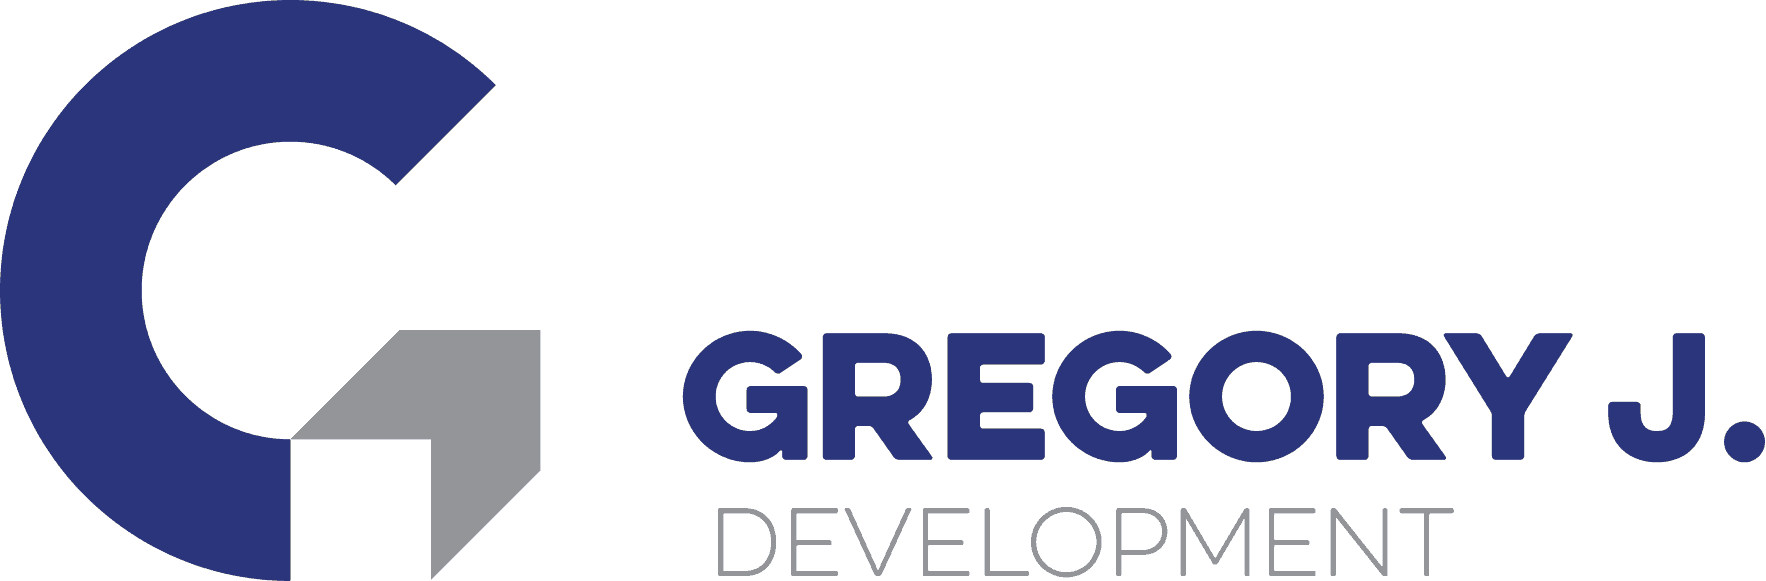 Gregory J Development logo